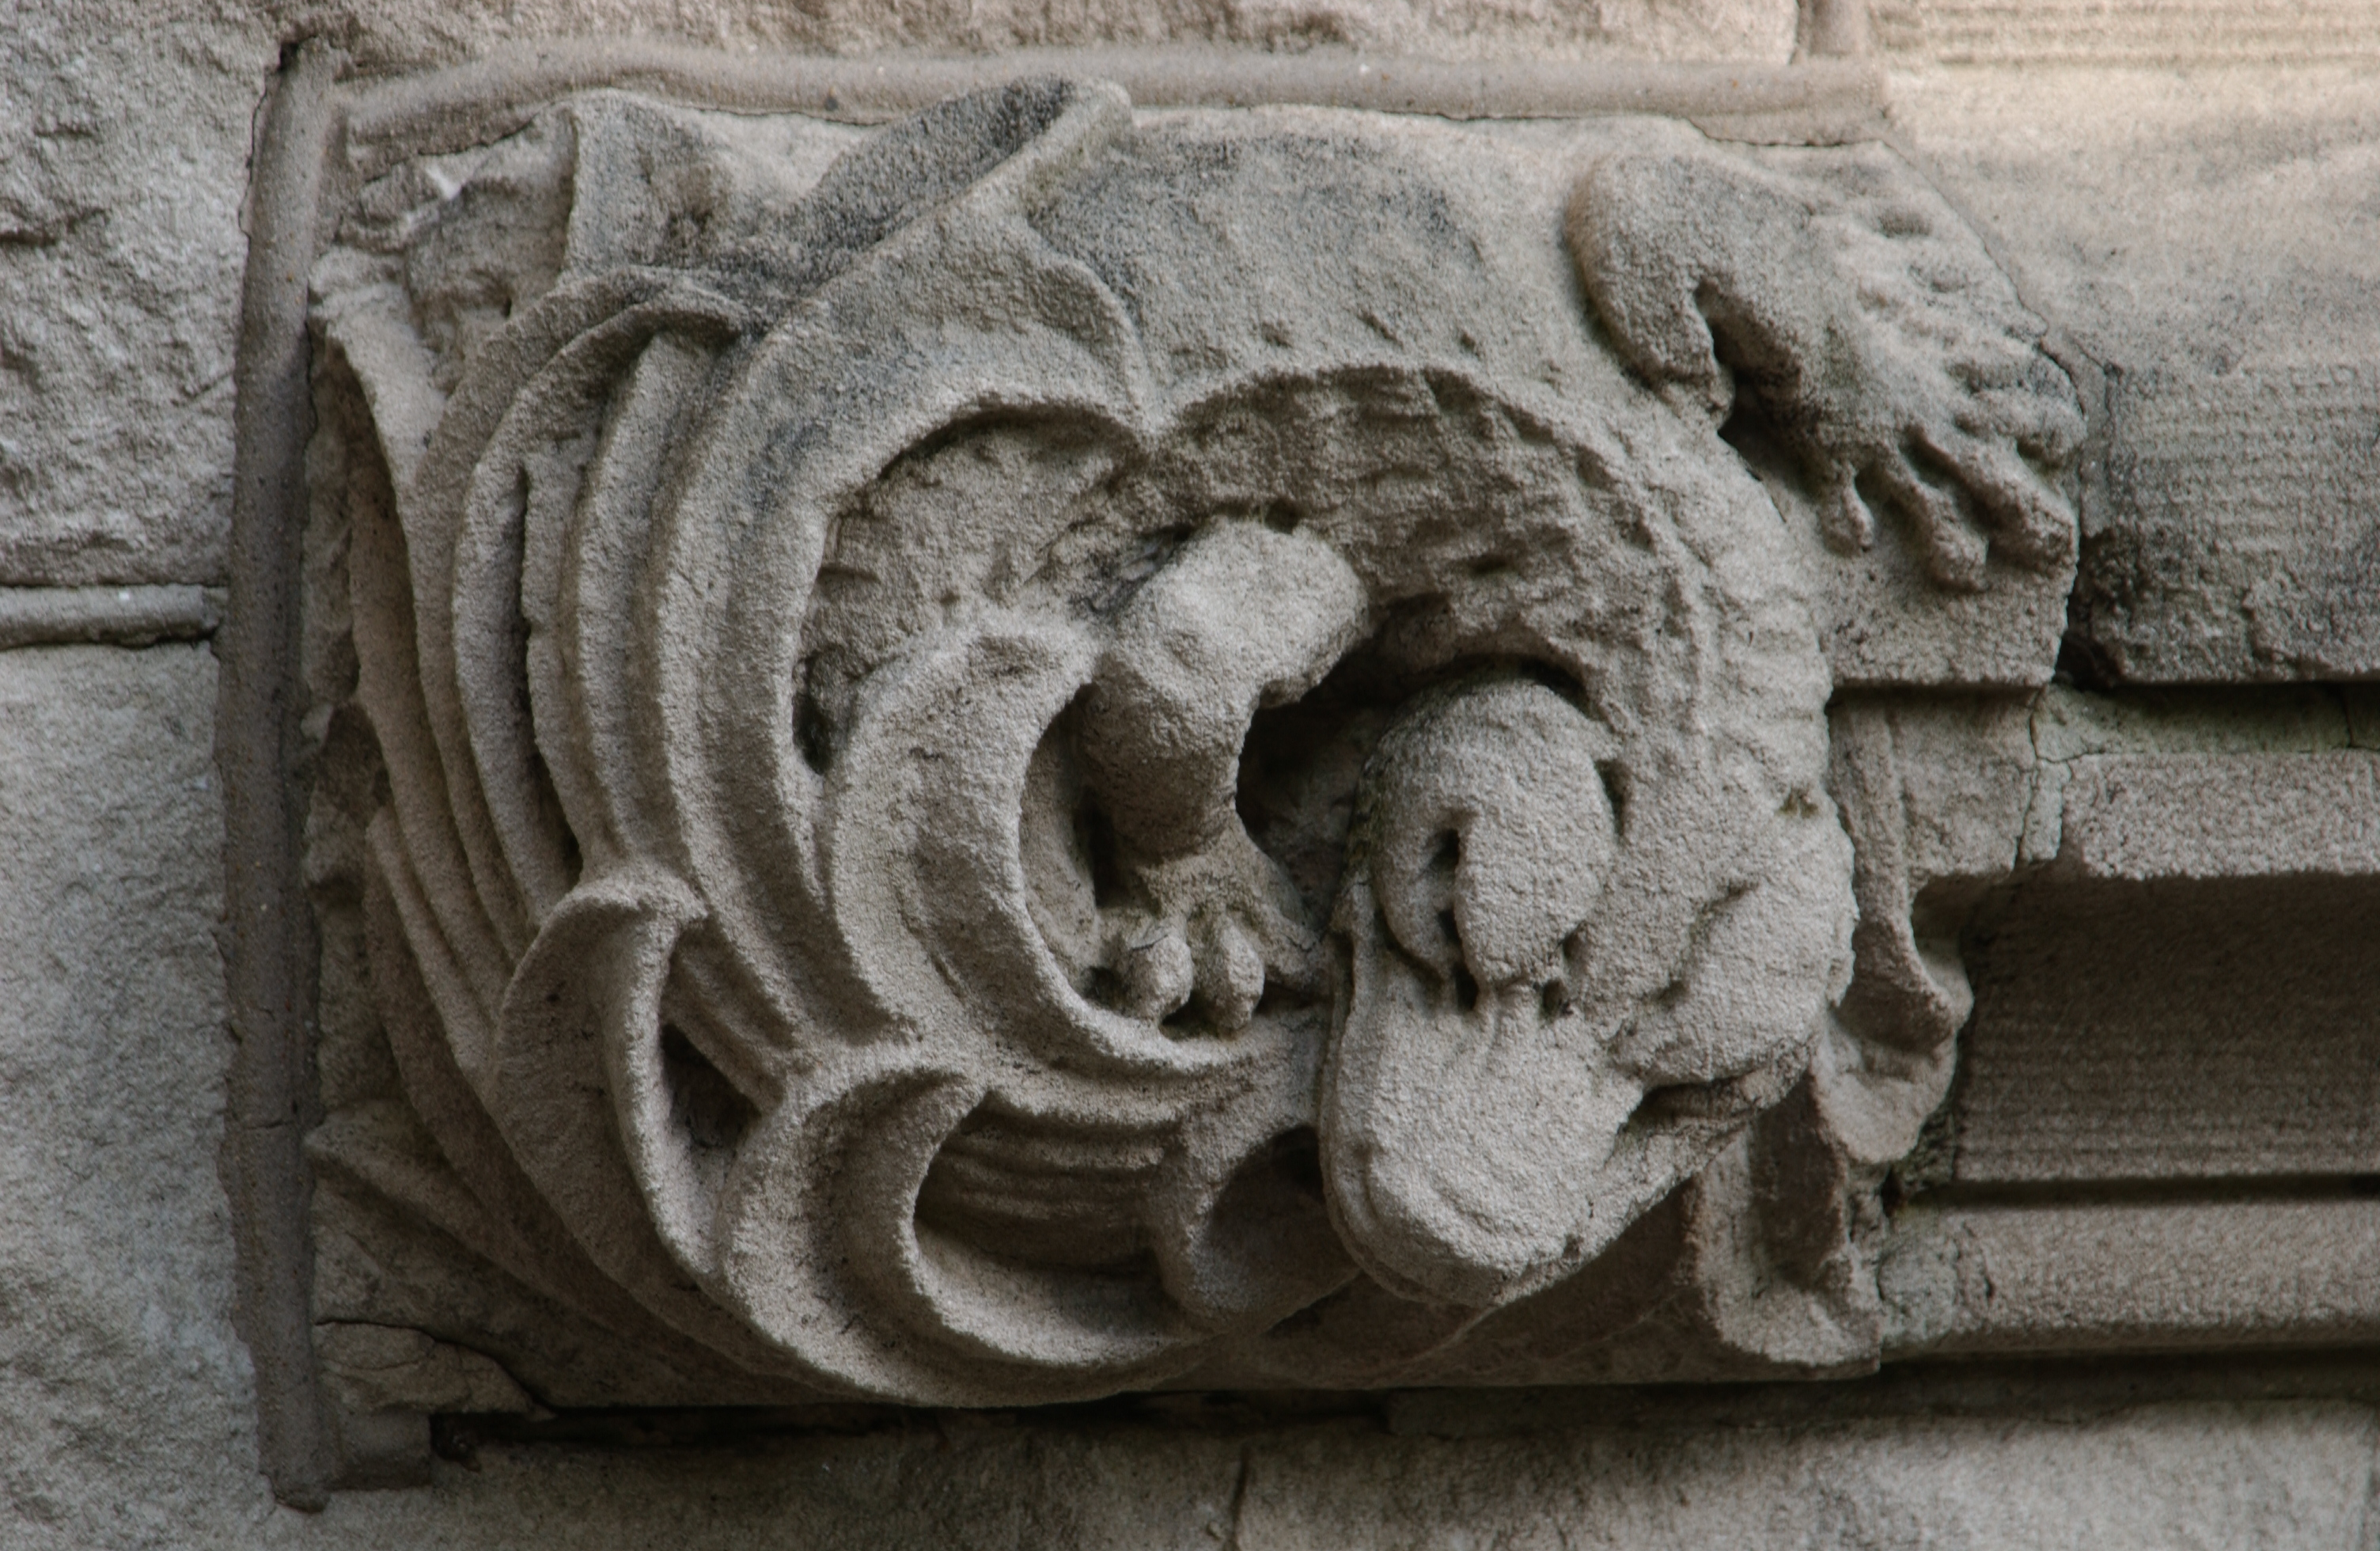 Close-up Photo of Dragon on Tulane University's Tilton Hall - The Murphy Institute